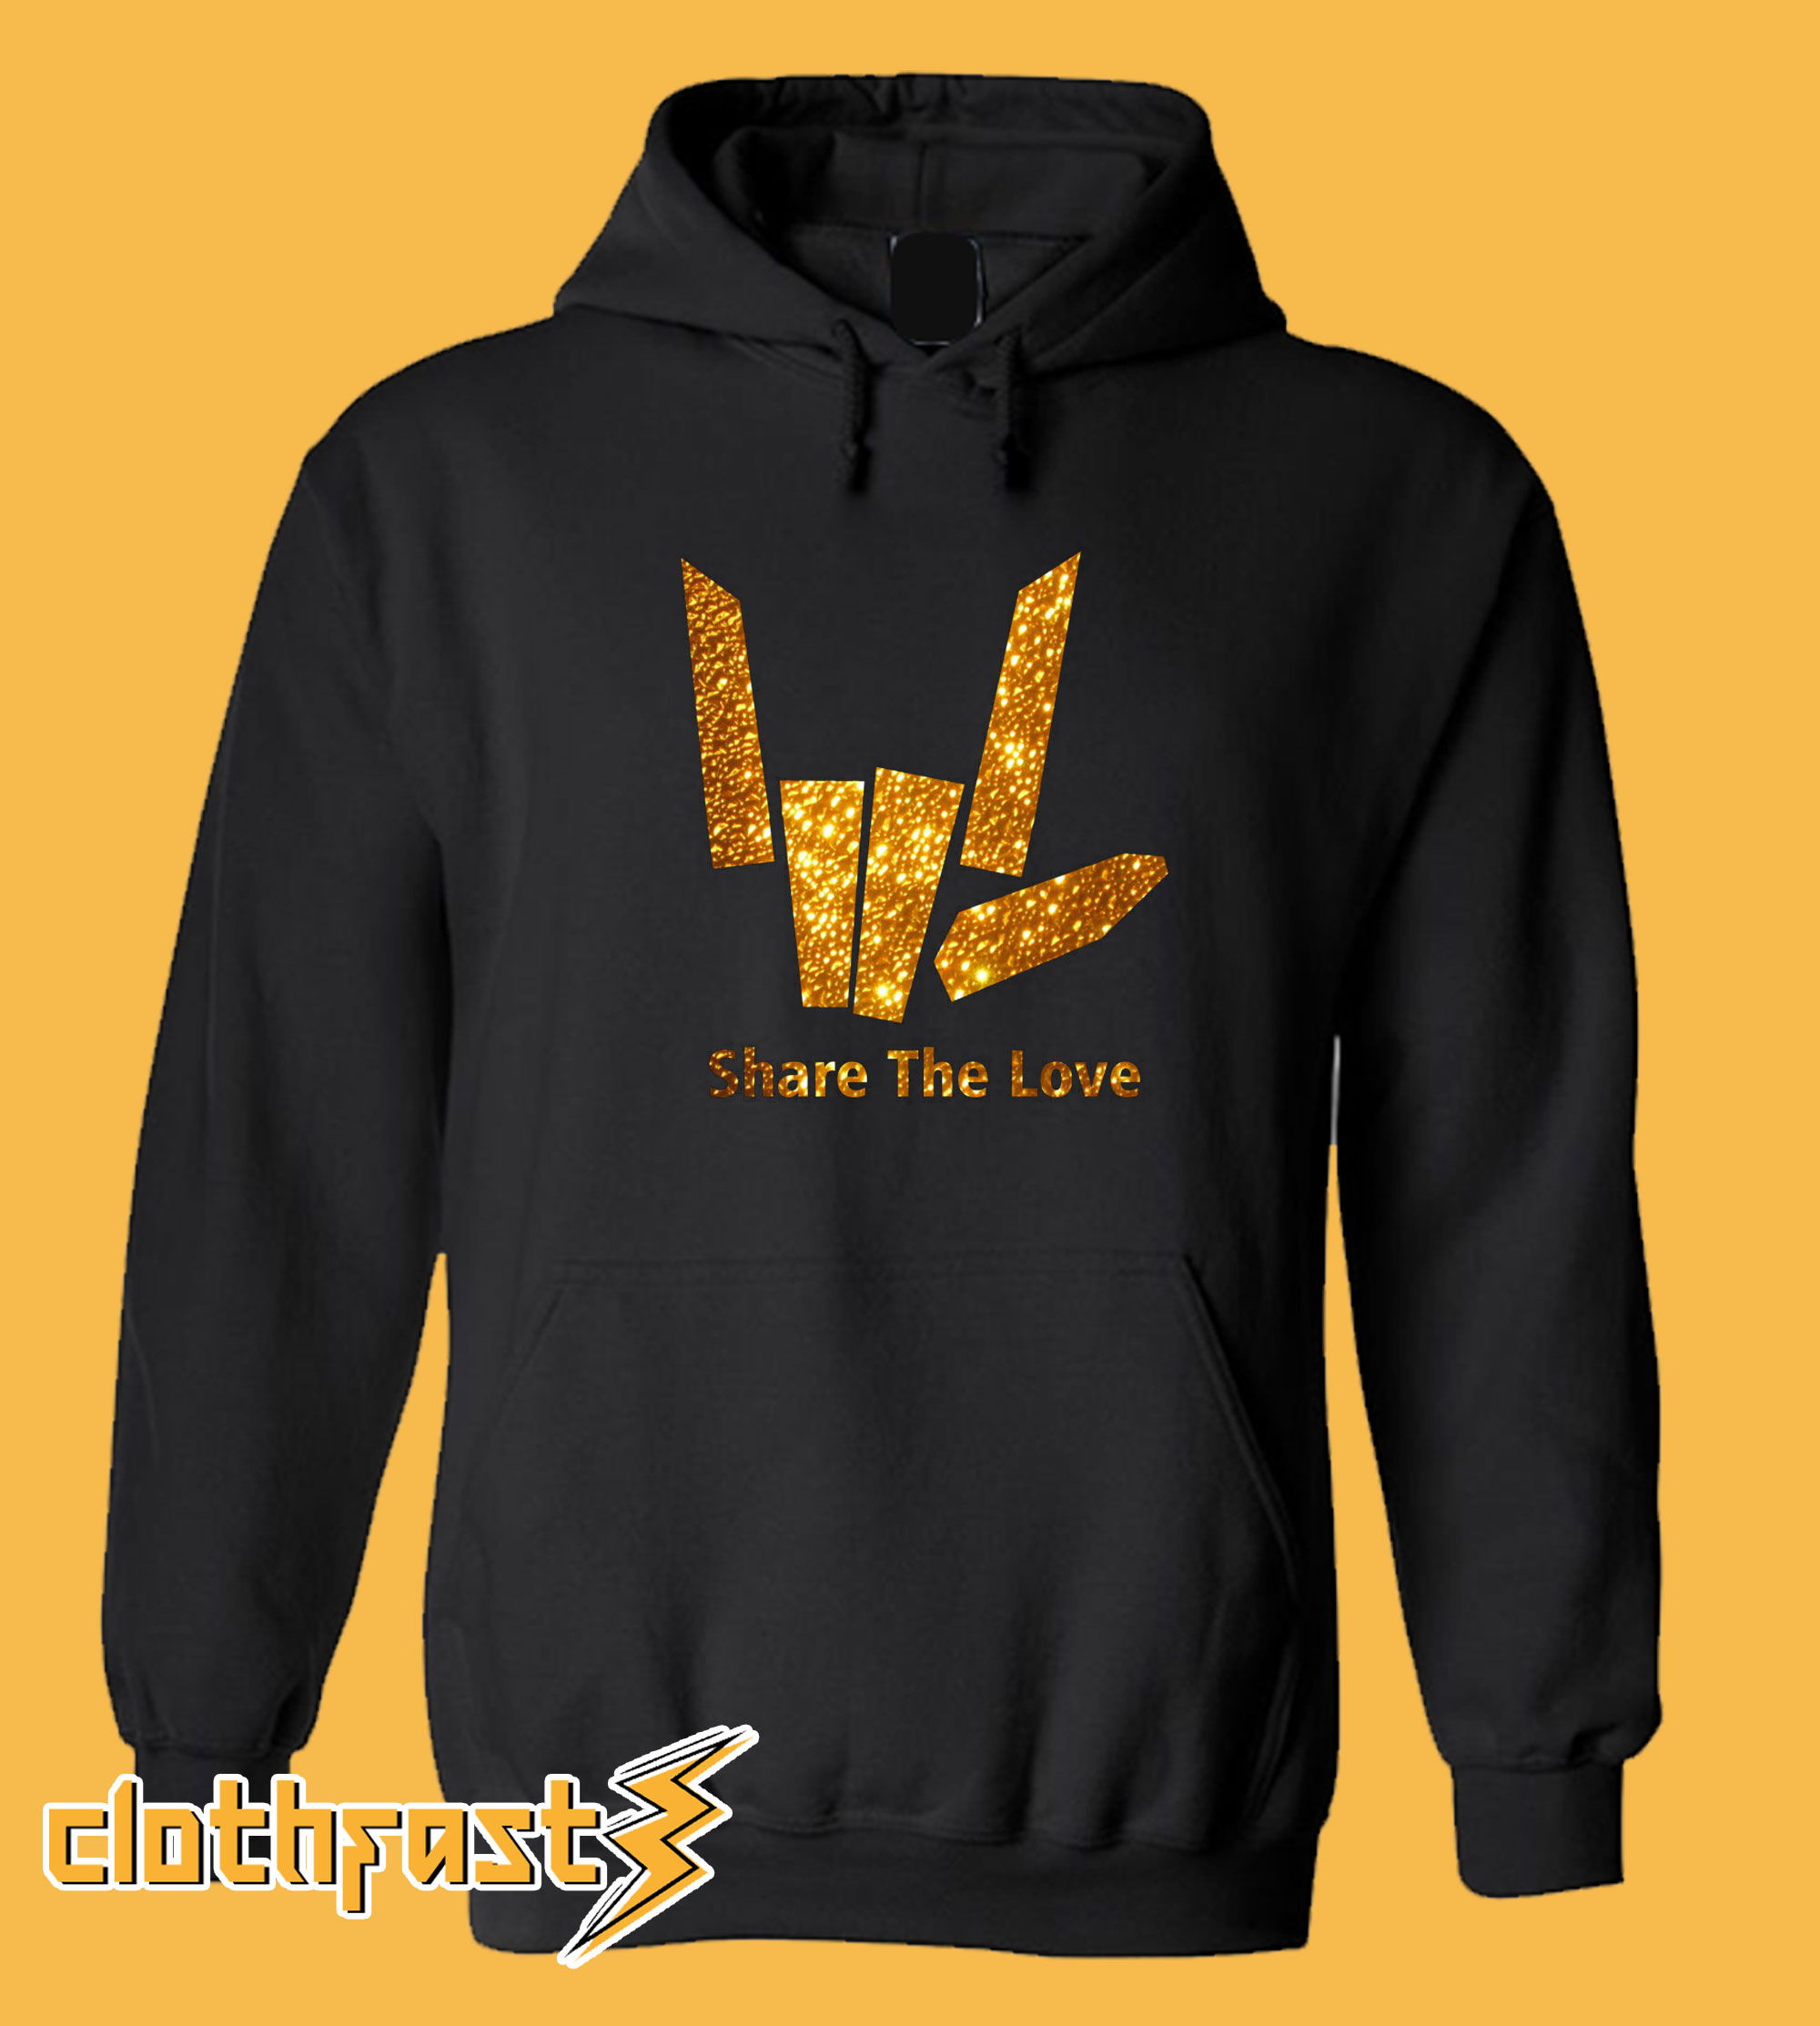 Share The Love Gold Hoodie